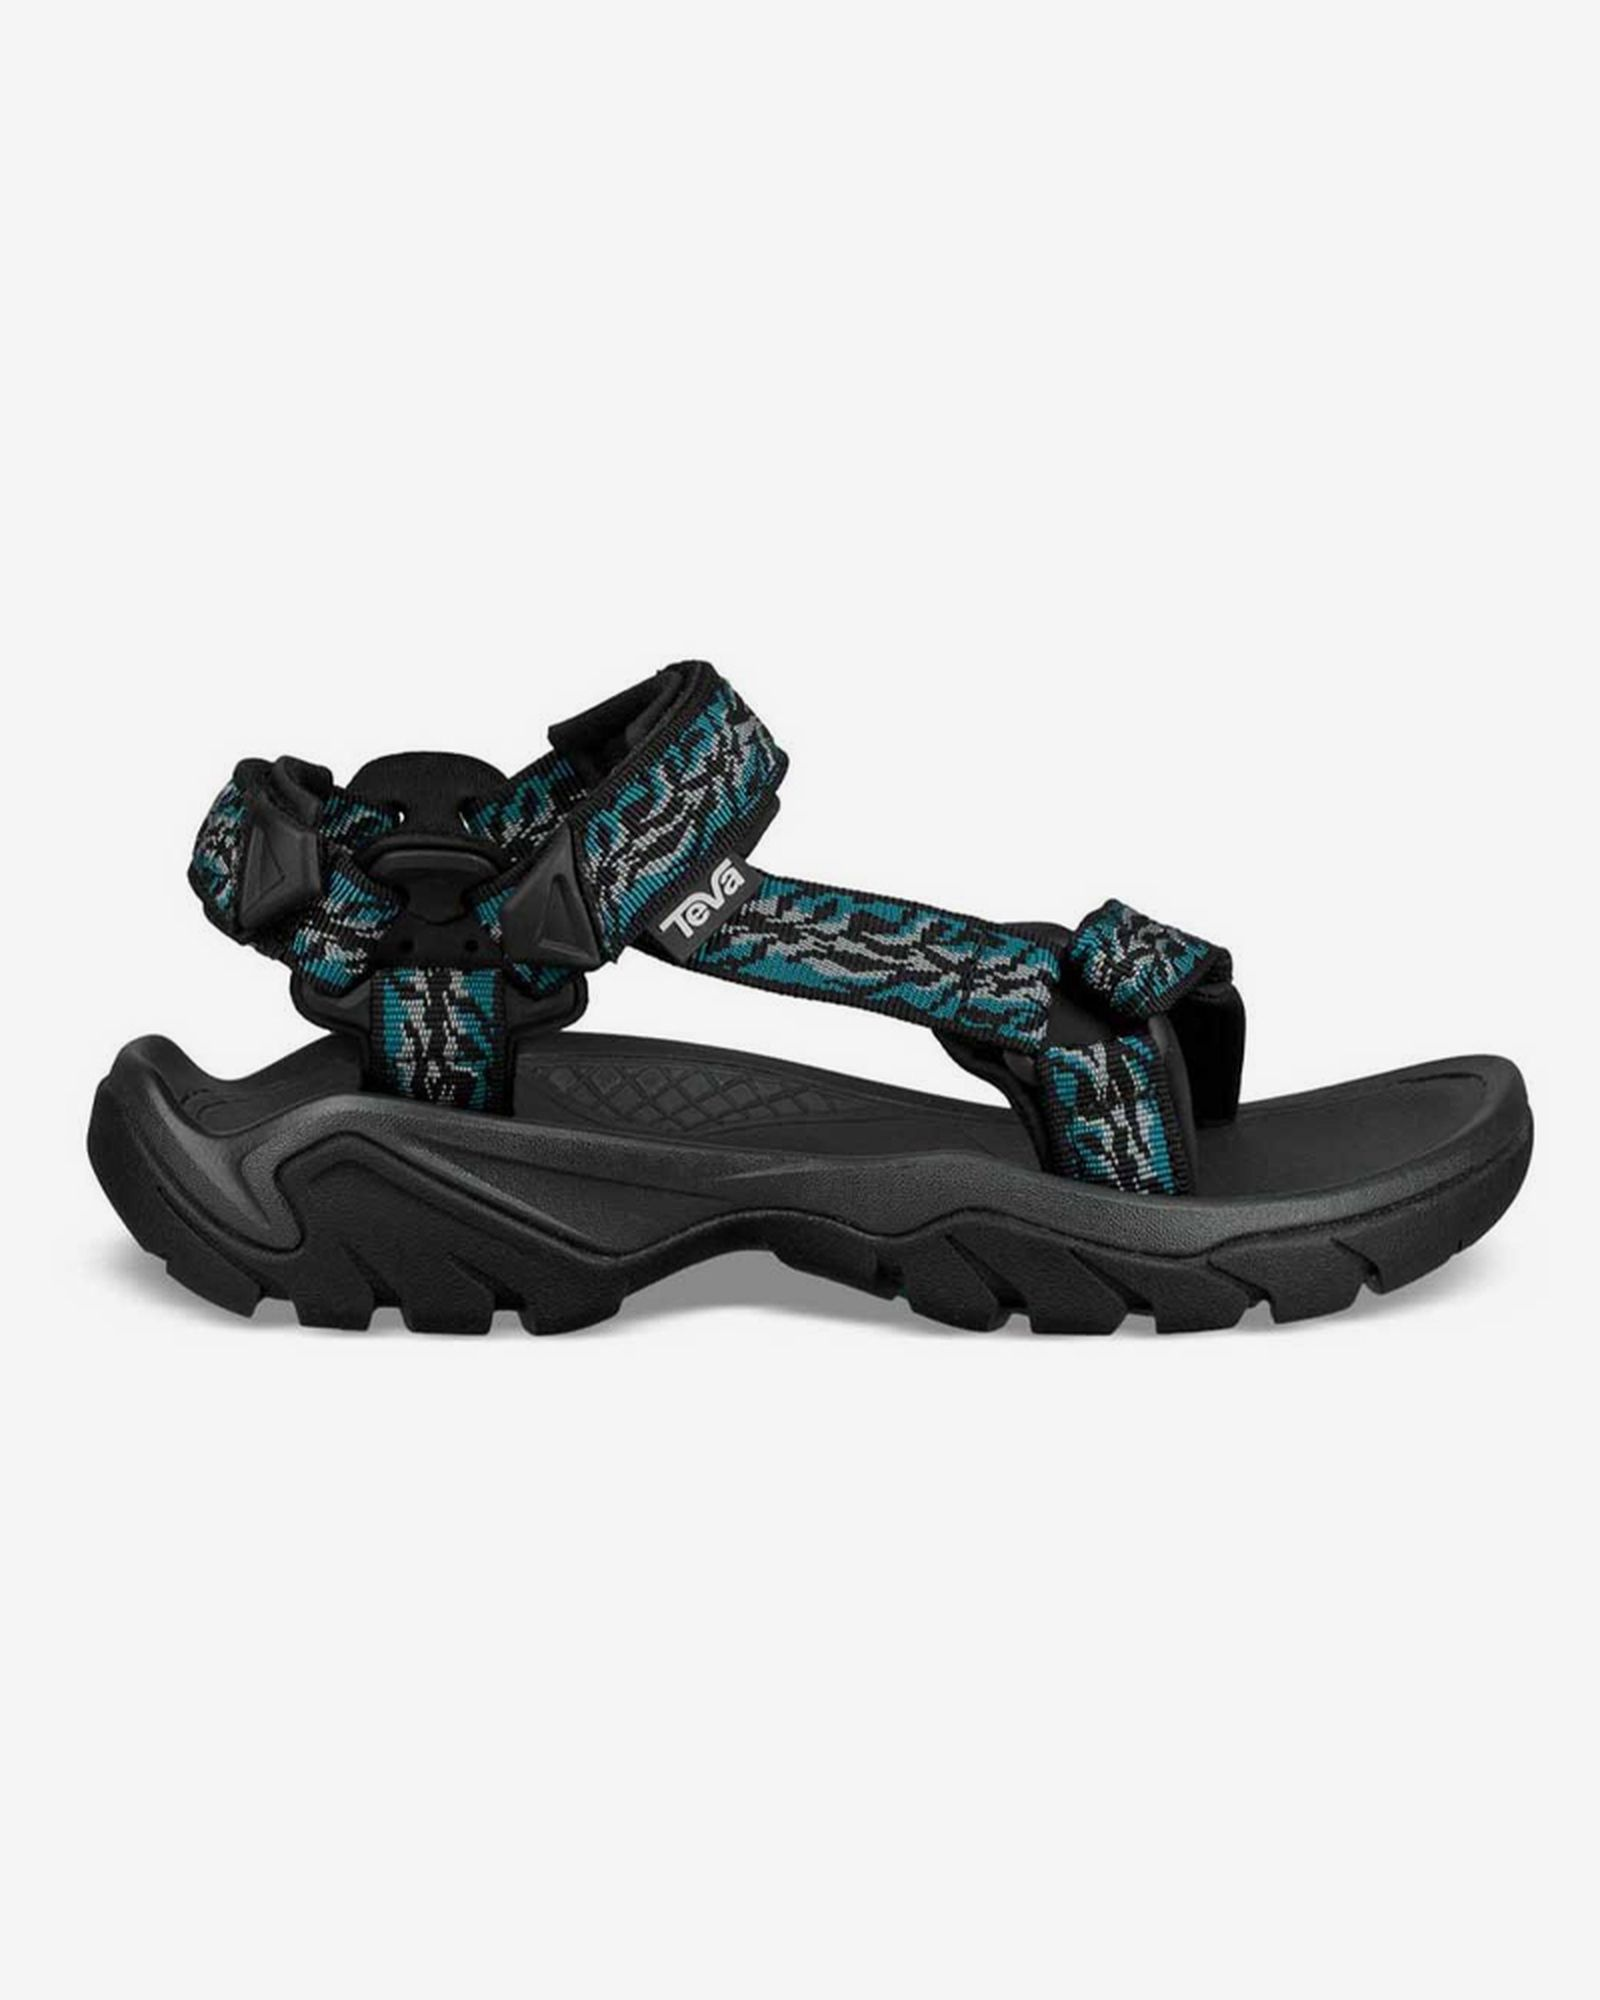 dad-sandals-roundtable-shopping-guide-02